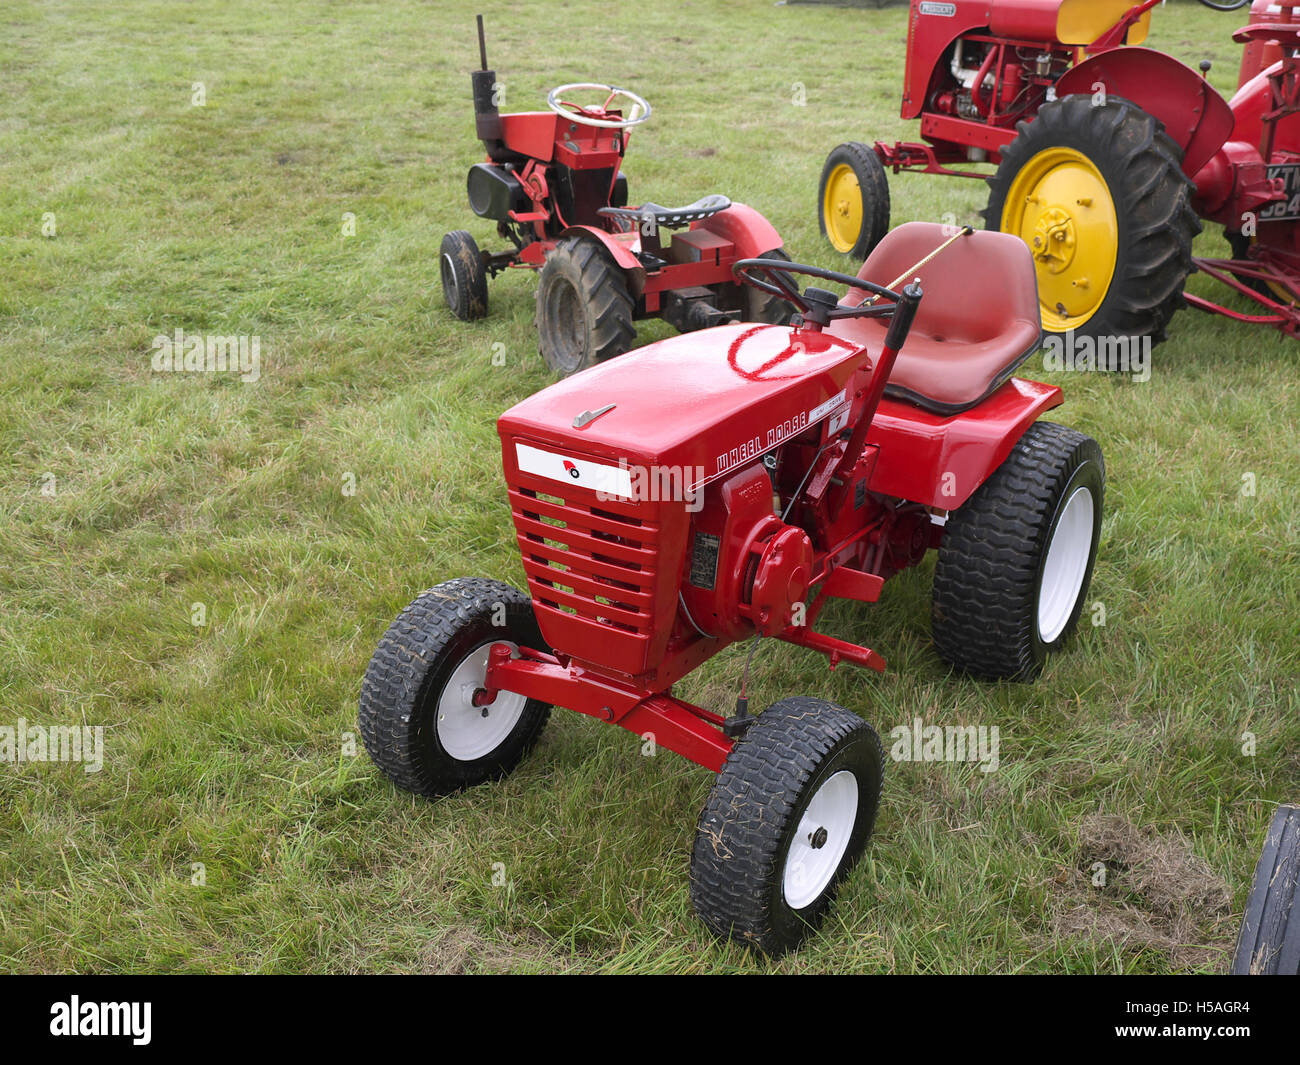 Wheel Horse Garden Tractor On Display At Lineside Vintage Weekend Stock Photo Royalty Free